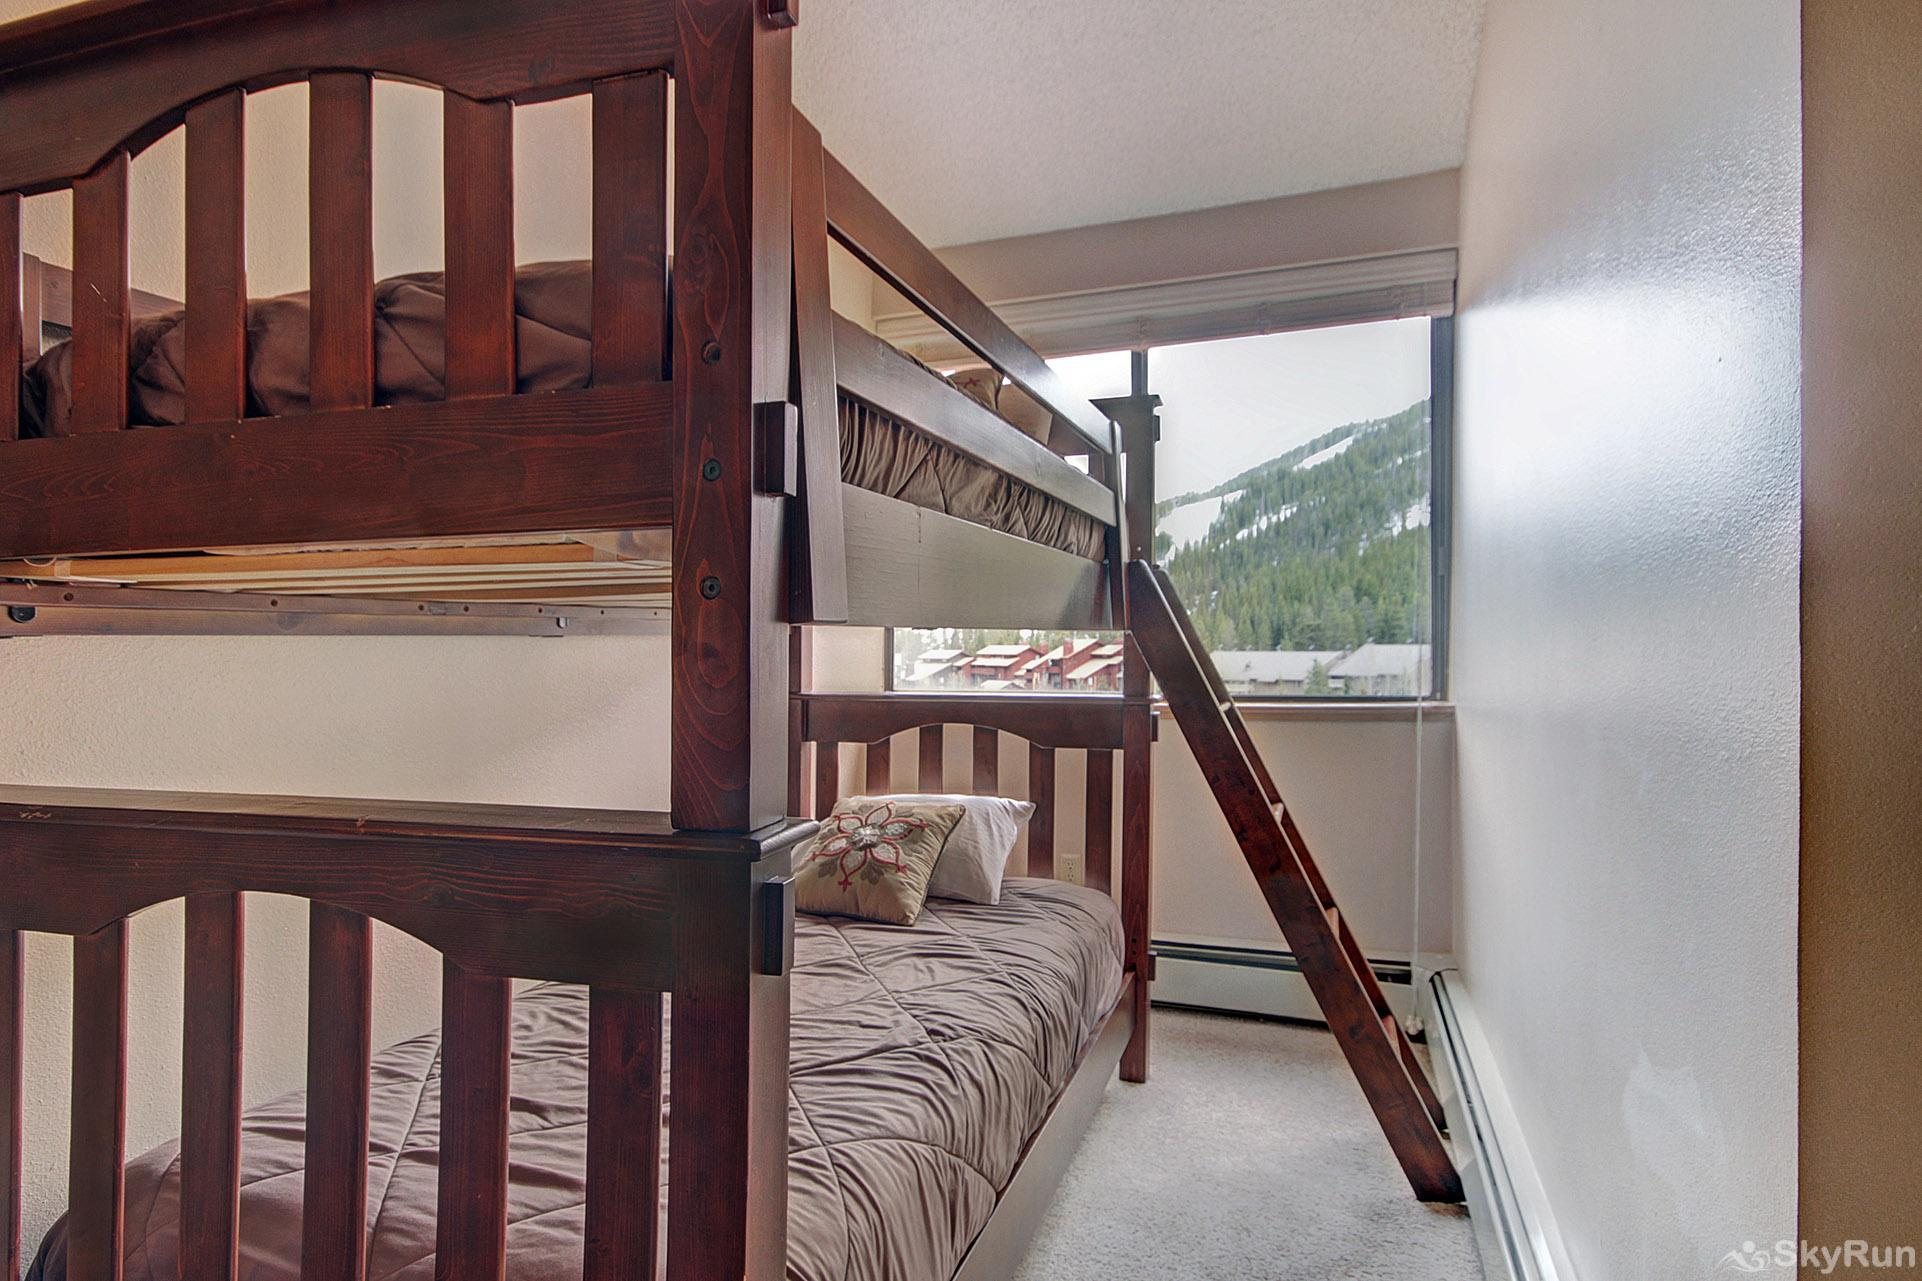 VS549 Village Square Twin Bunk Bed in Guest Bedroom